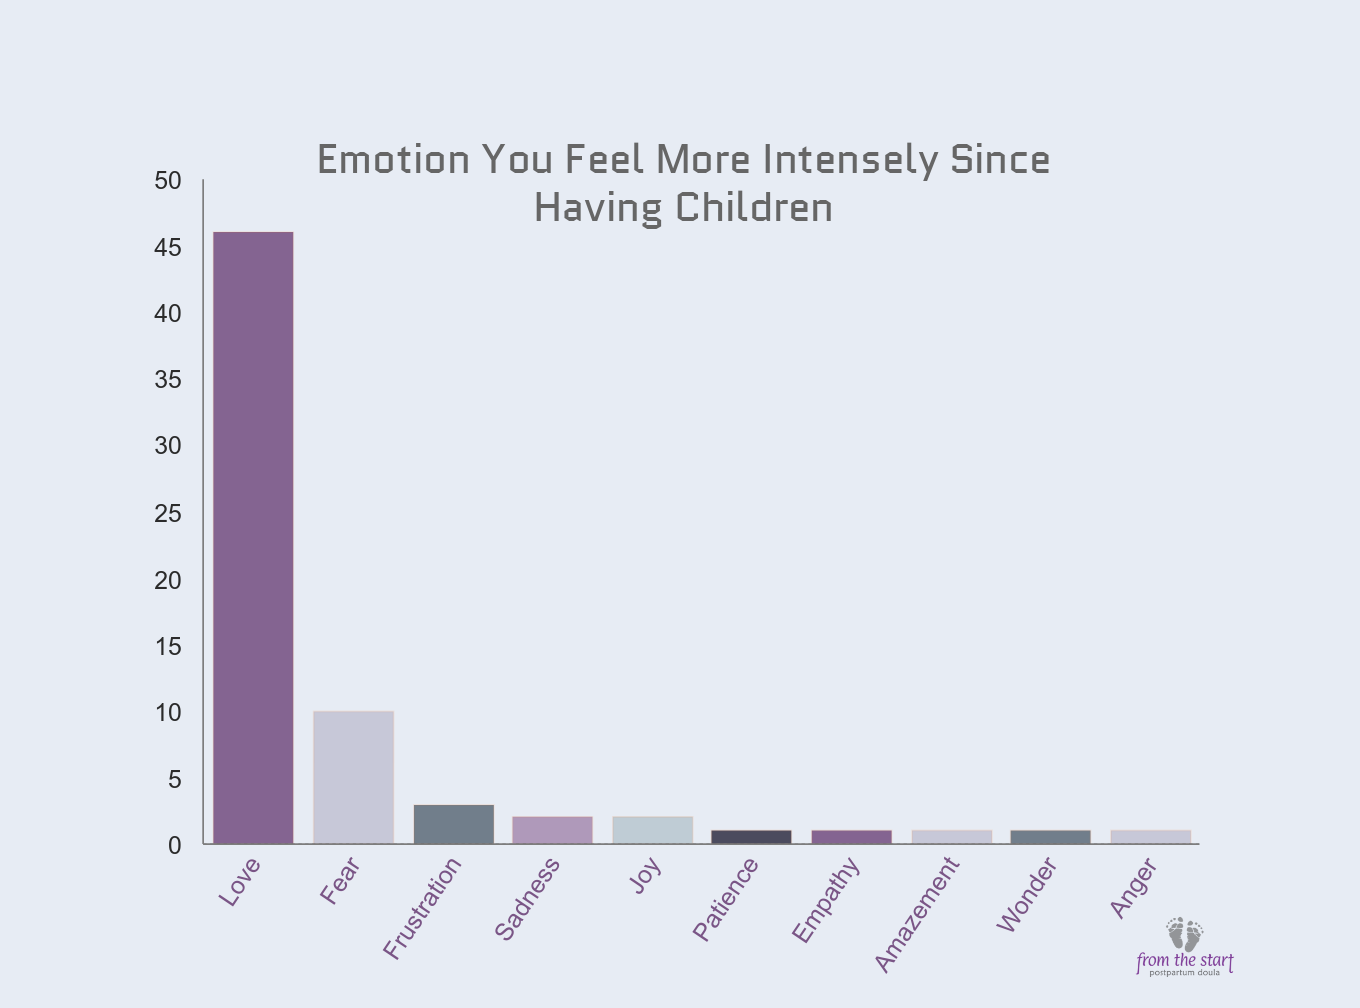 Mothers were asked to select the one emotion they feel more intensely since having children.